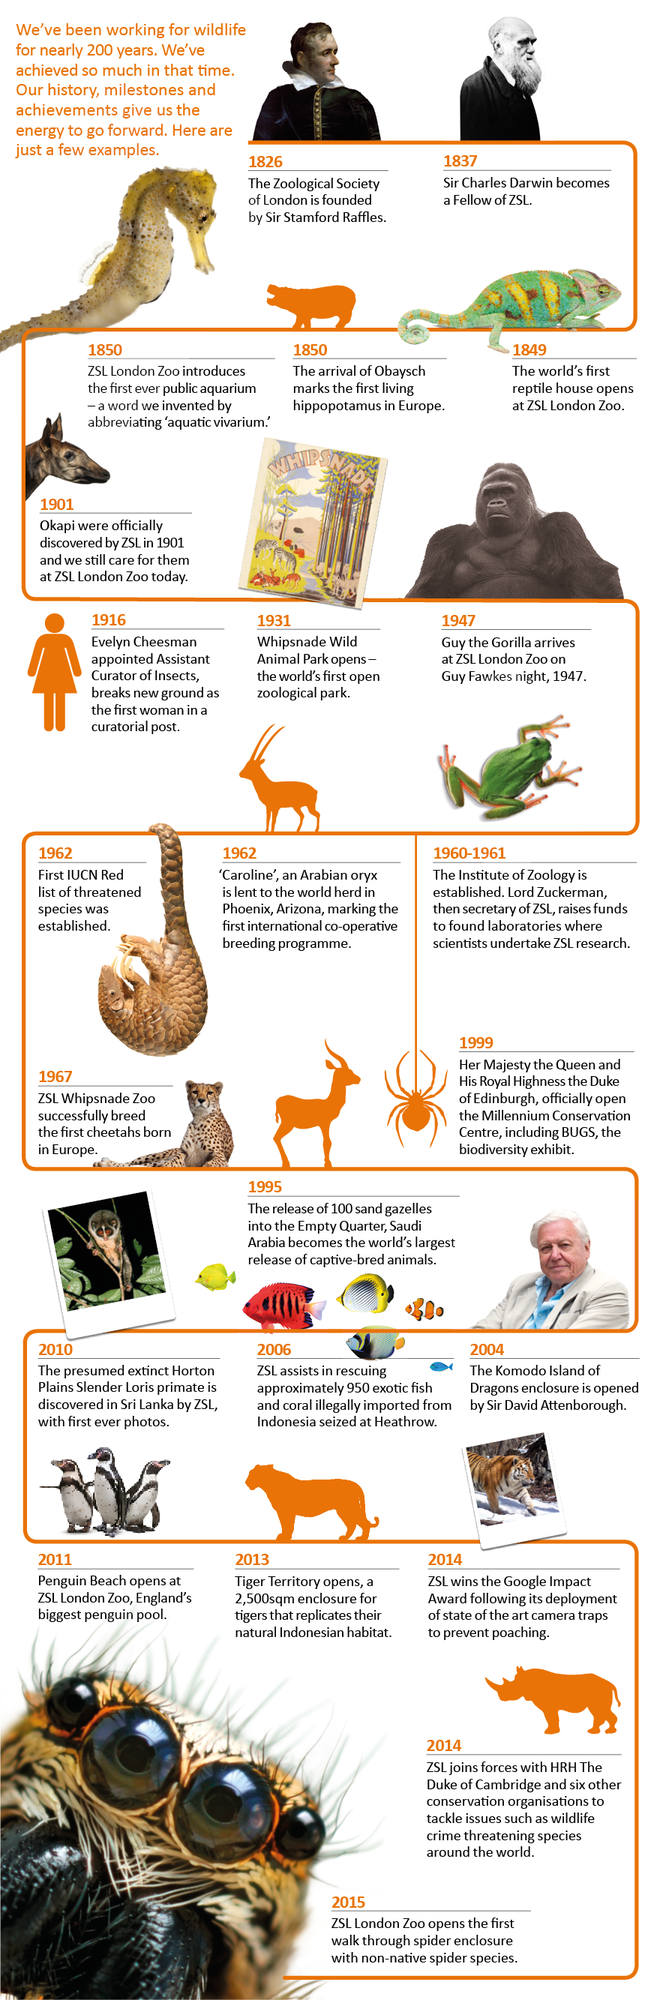 An infographic of the history of the Zoological Society of London.